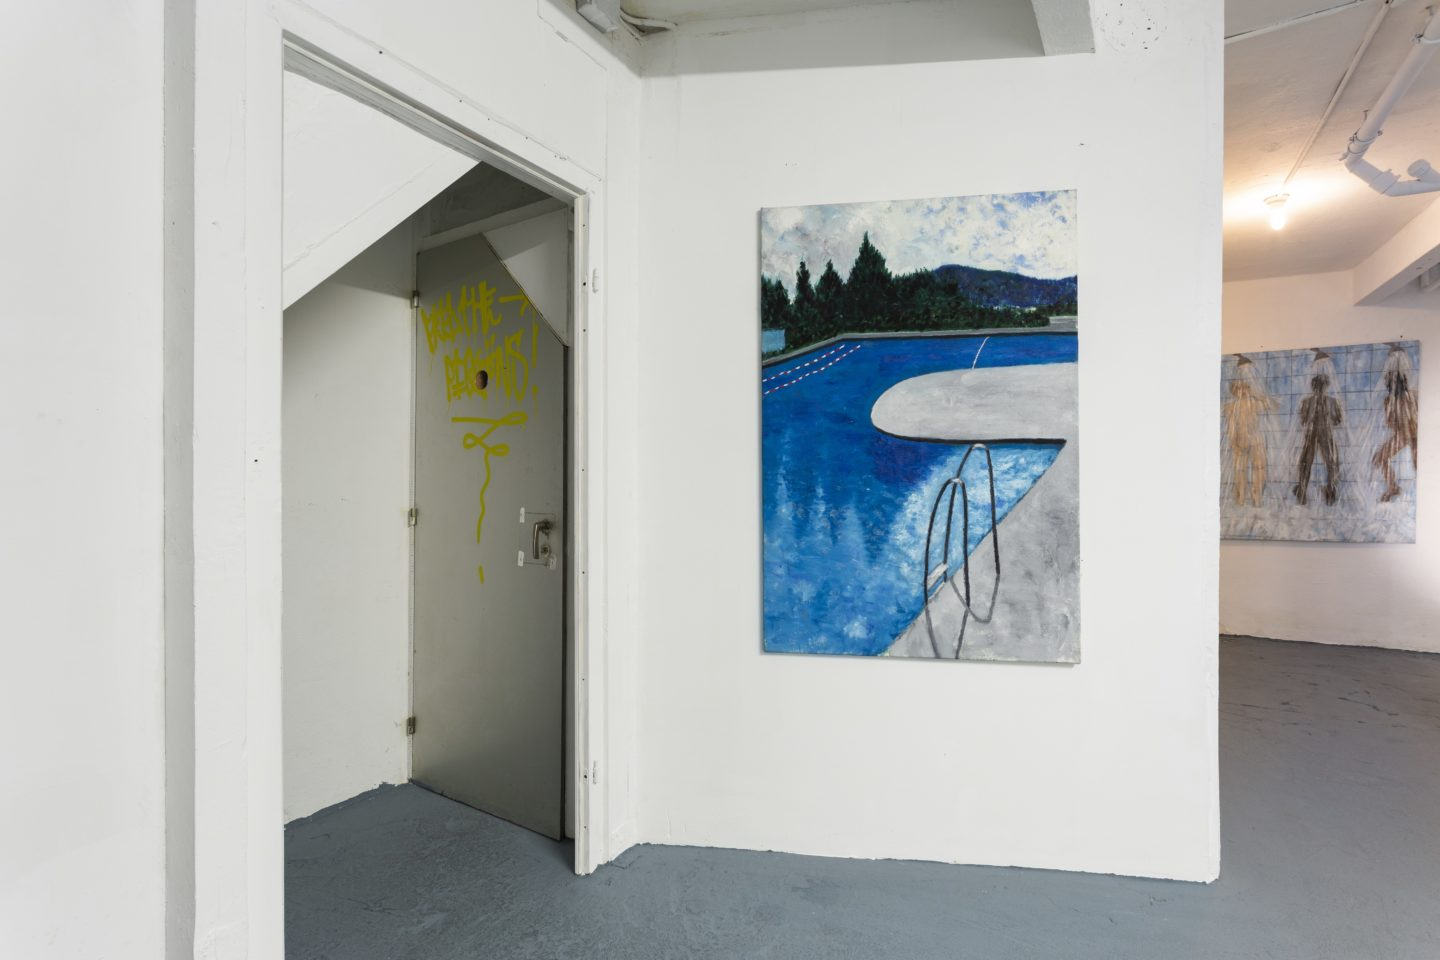 Exhibition View Groupshow «Dieter Hall & Xénia Lucie Laffely» at Last Tango, Zurich / Photo: Kilian Bannwart / Courtesy: the artist and Last Tango, Zurich